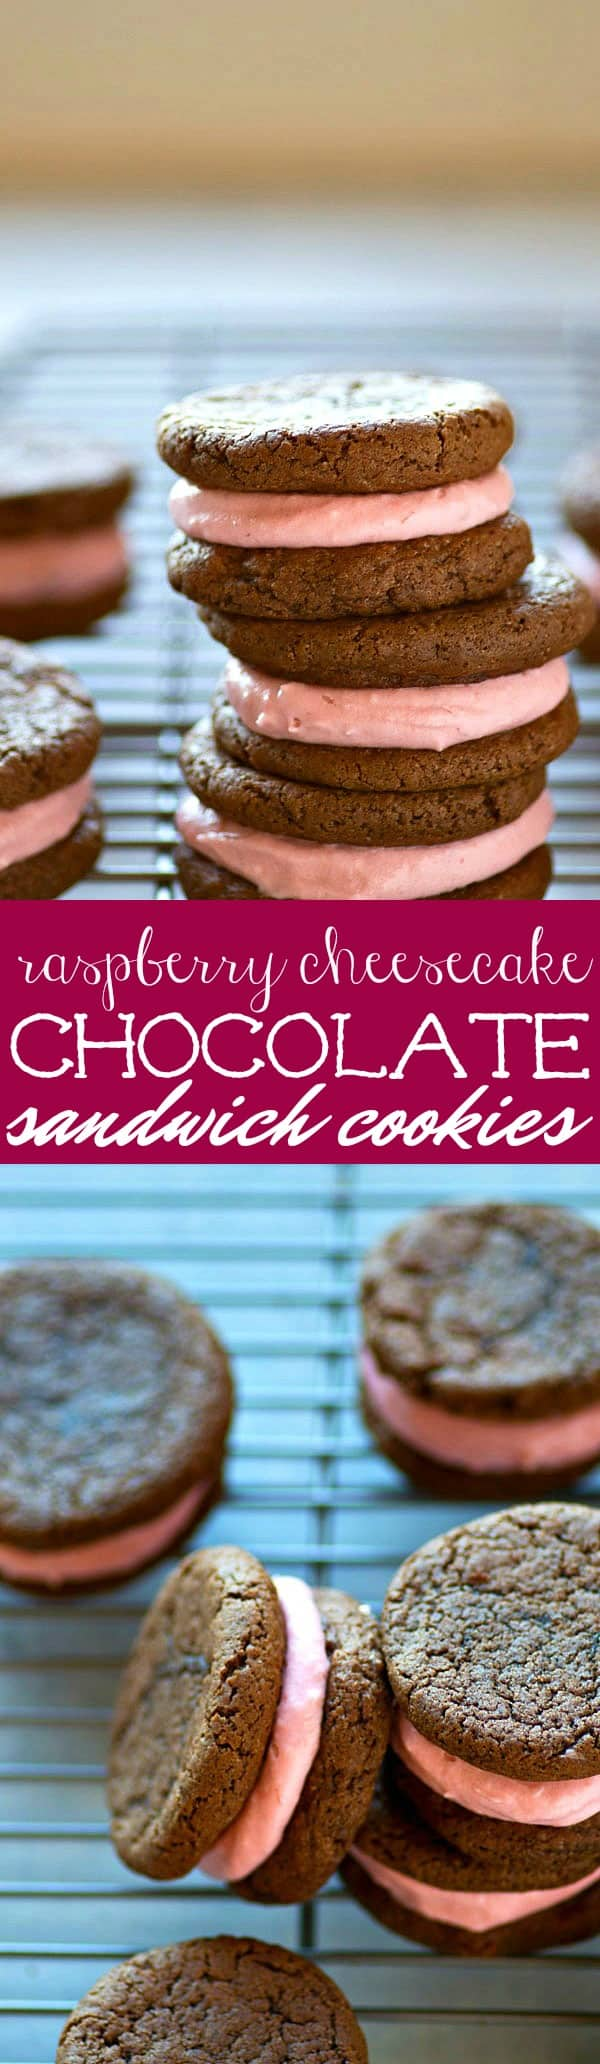 Silky raspberry cheesecake frosting is sandwiched between brownie-like chocolate cookies and the rest is history. These chocolate sandwich cookies are incredibly easy to make and so gorgeous!